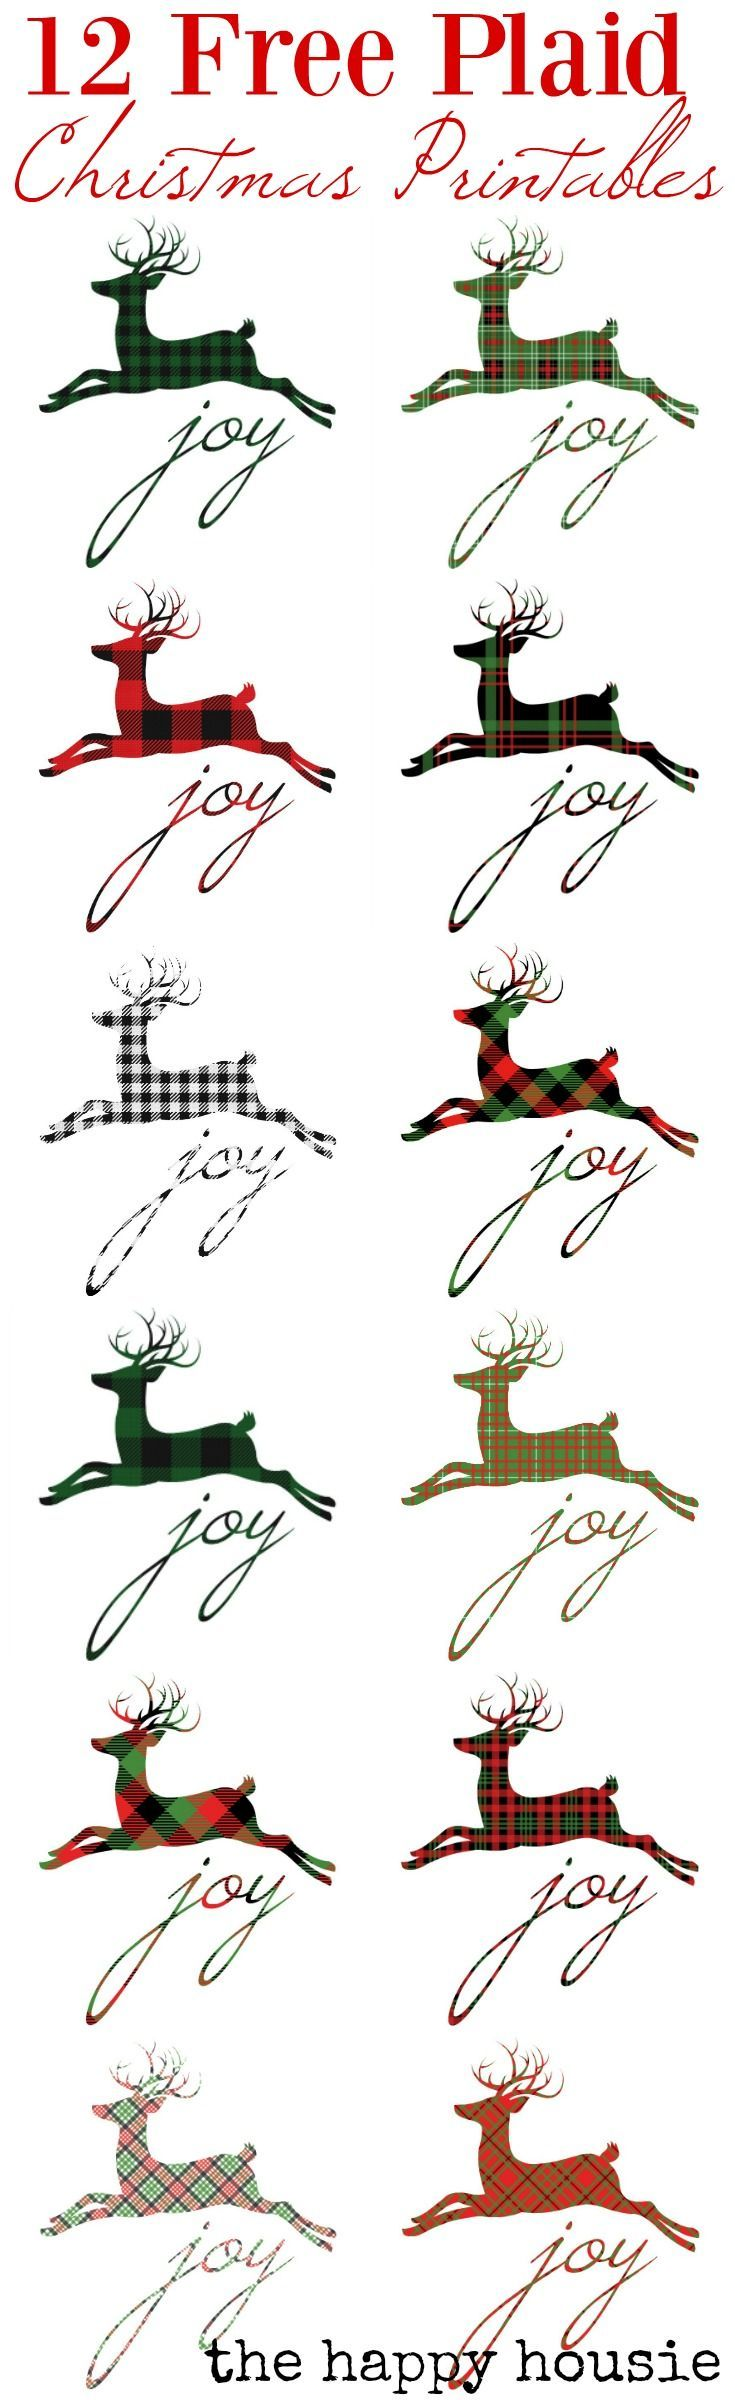 12-free-plaid-christmas-printables-at-the-happy-housie